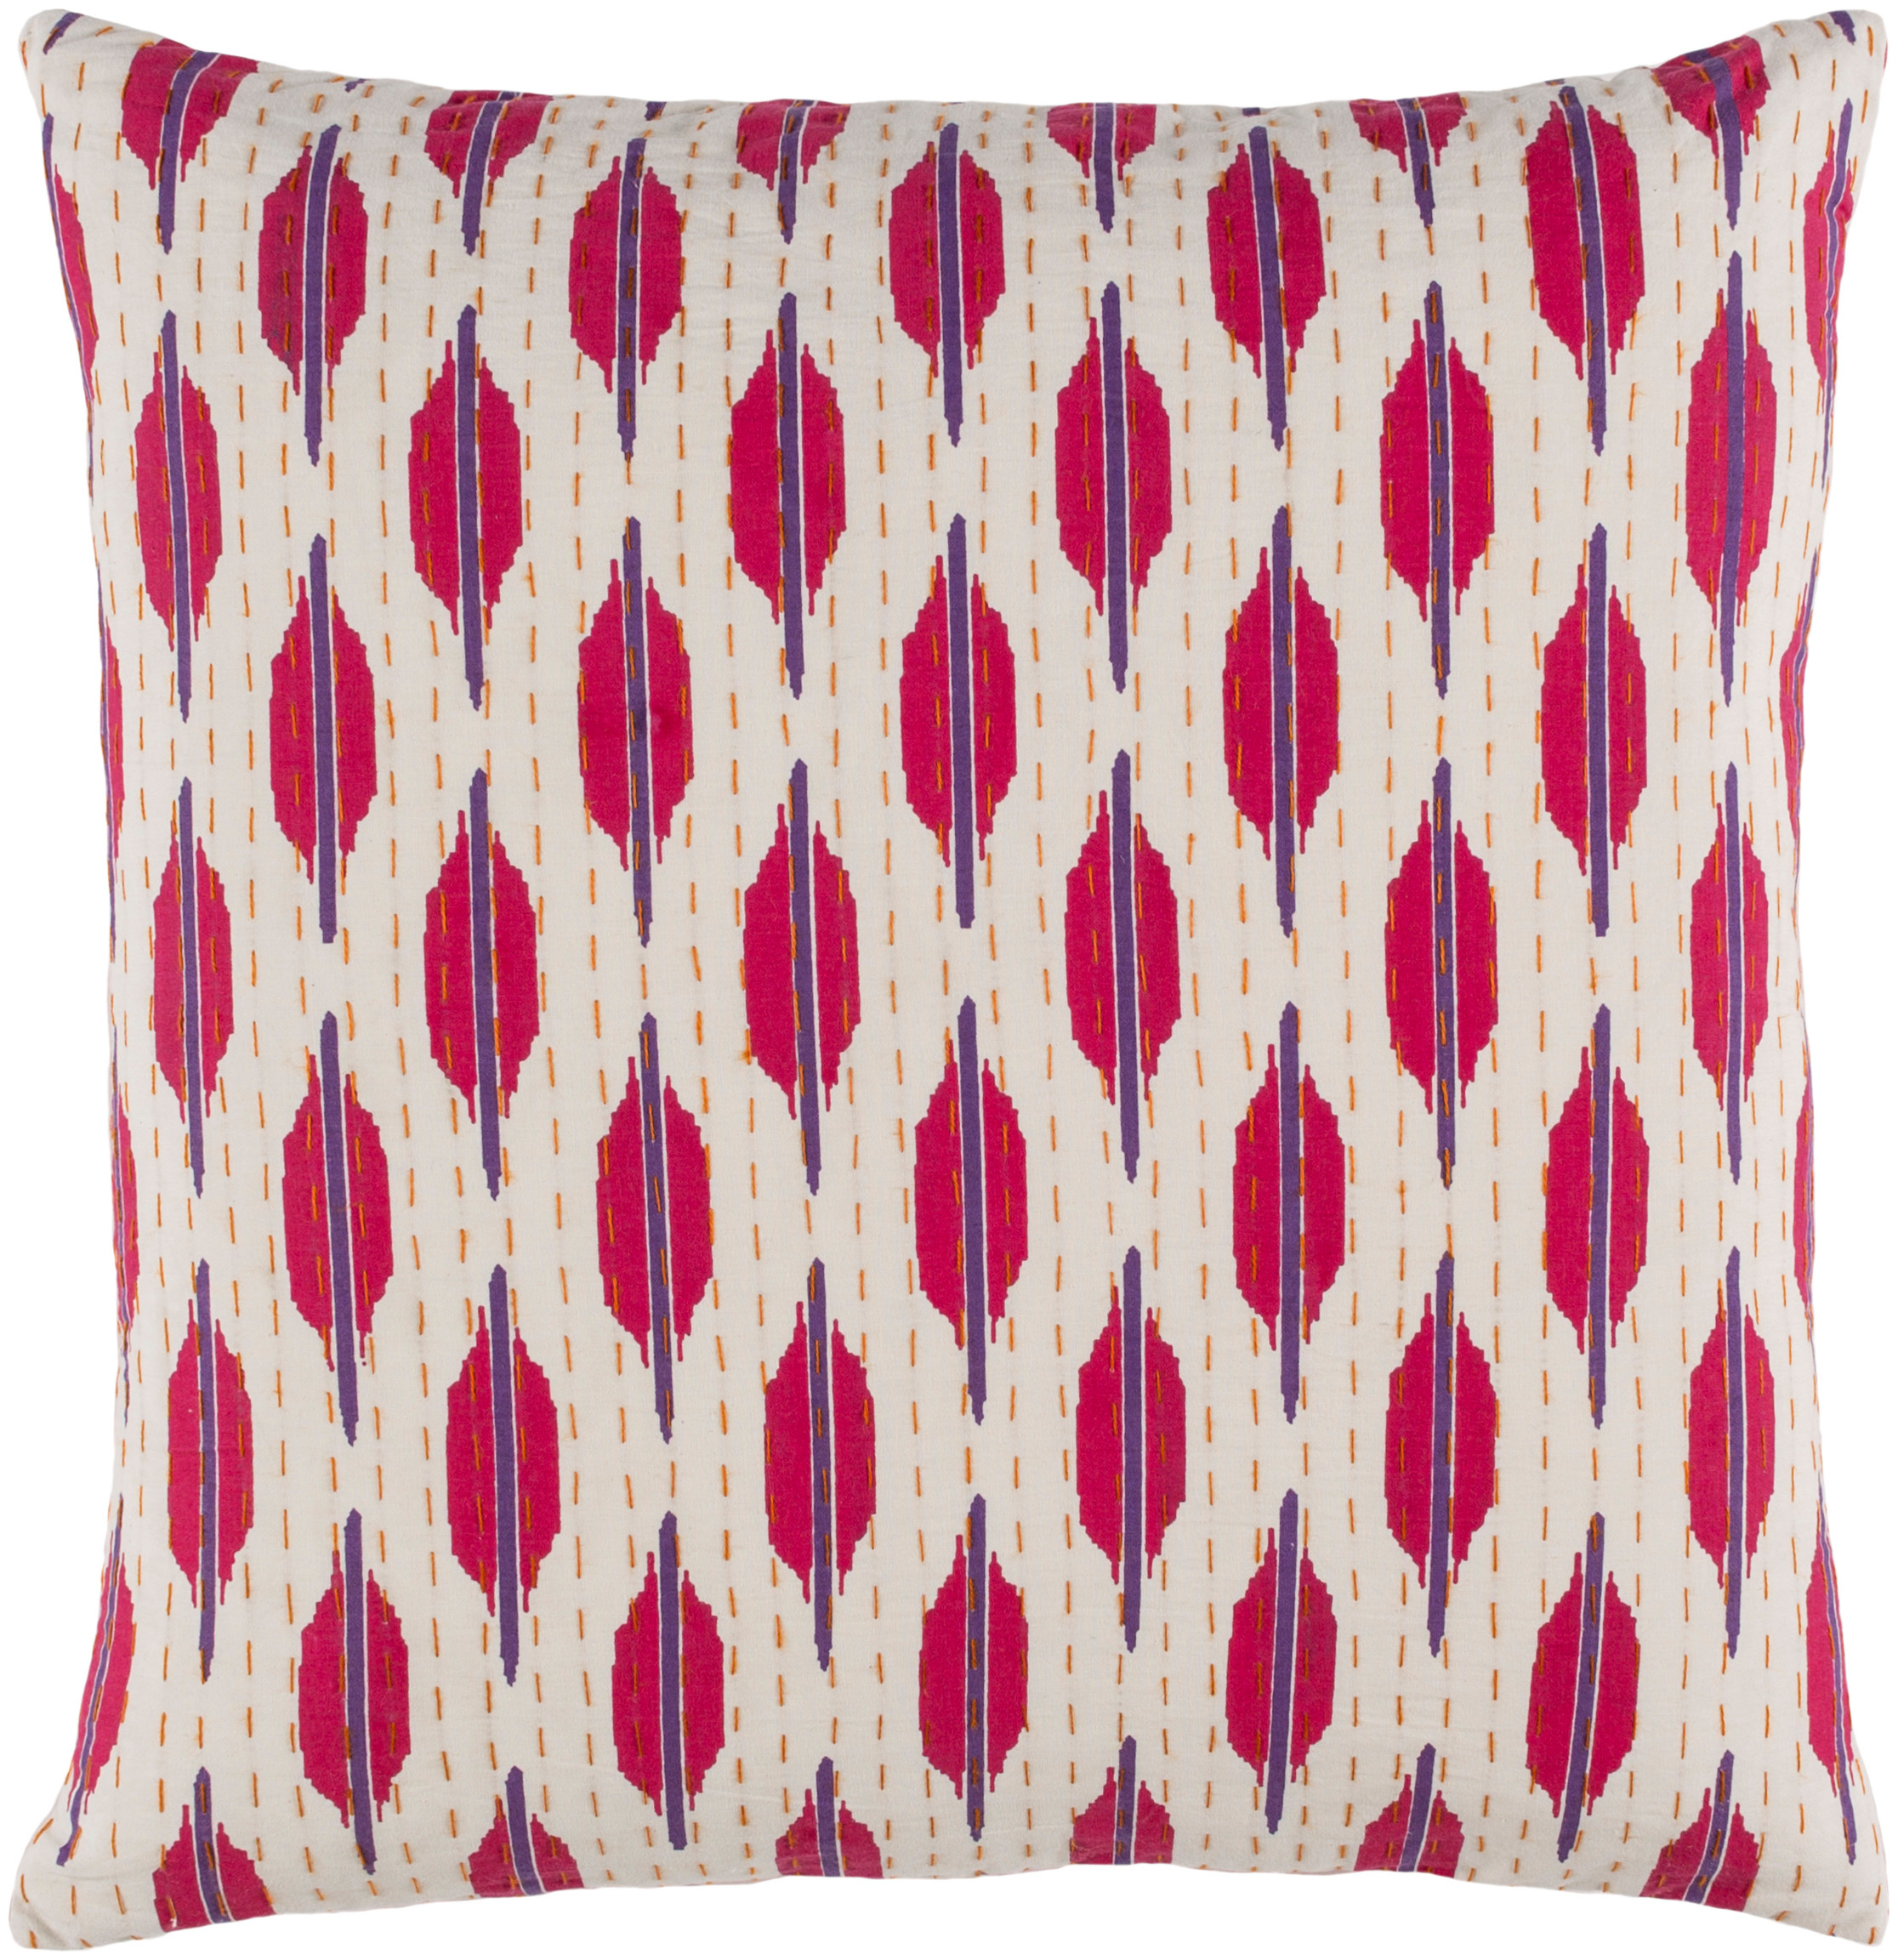 Lighting Design Kth Kth 006 Surya Rugs Lighting Pillows Wall Decor